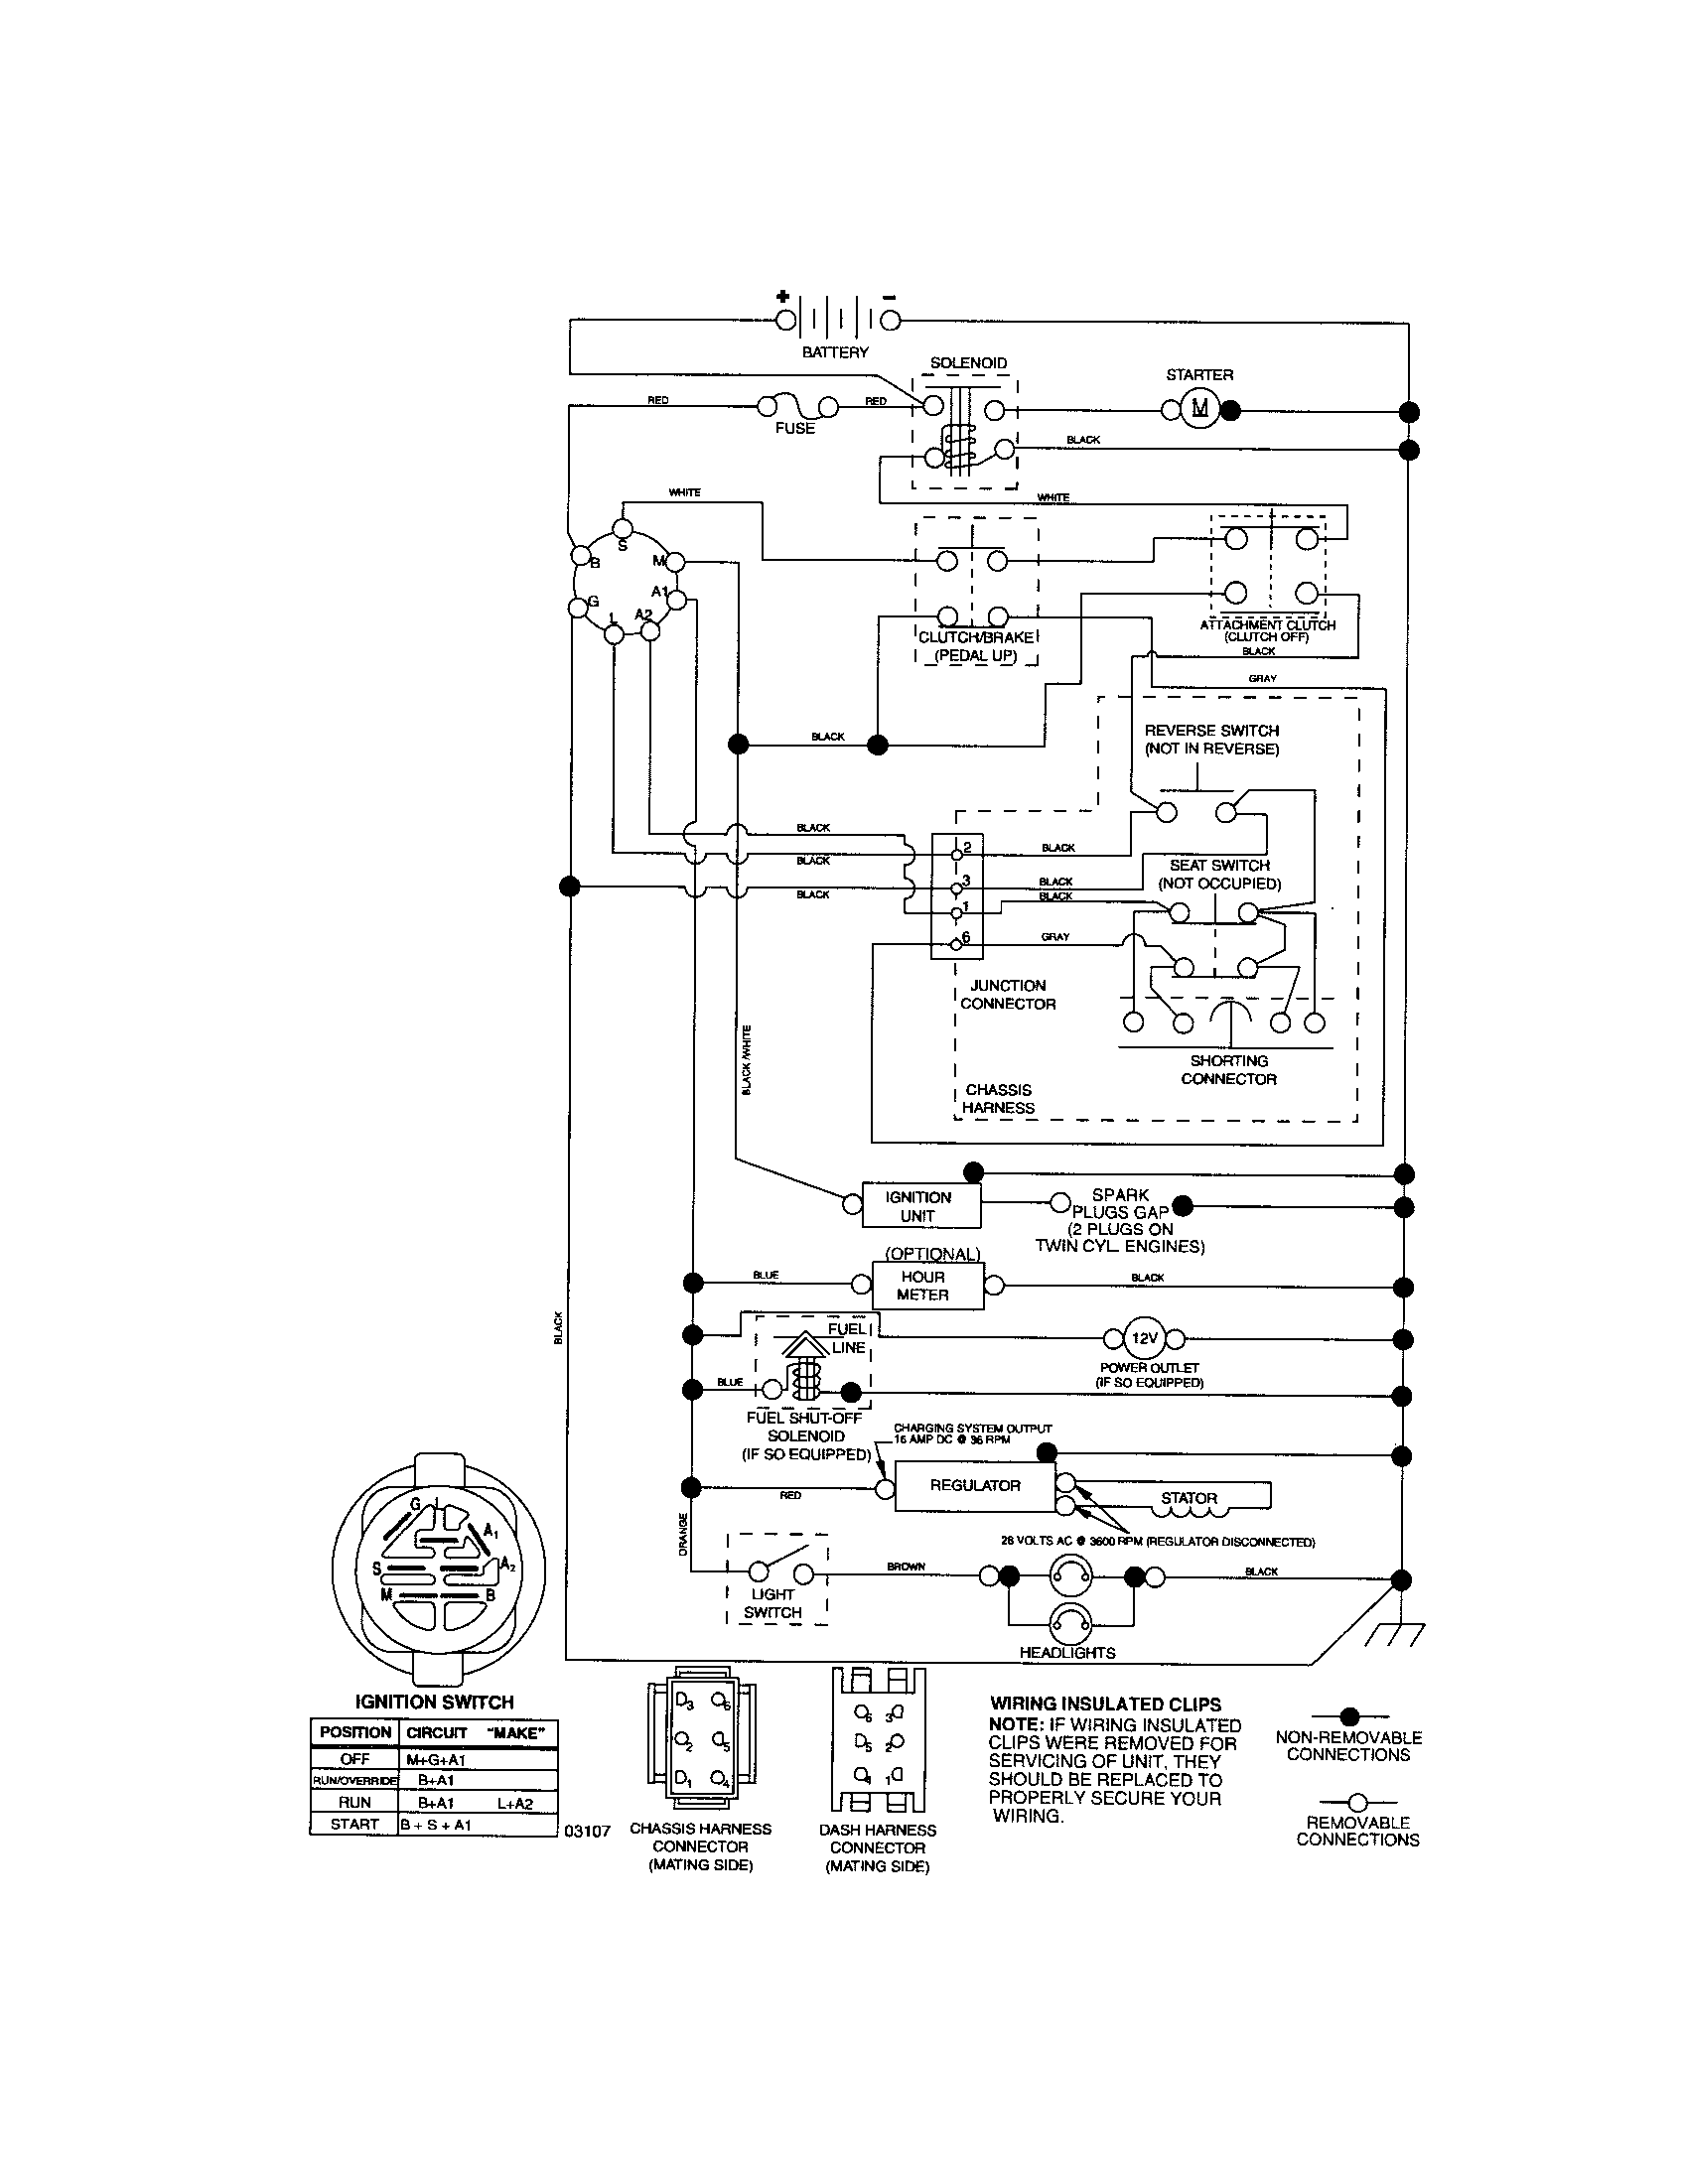 6af5f1447fd13c8443376822ddc1e105 riding lawn mower wiring diagram gravely mower wiring diagram  at honlapkeszites.co